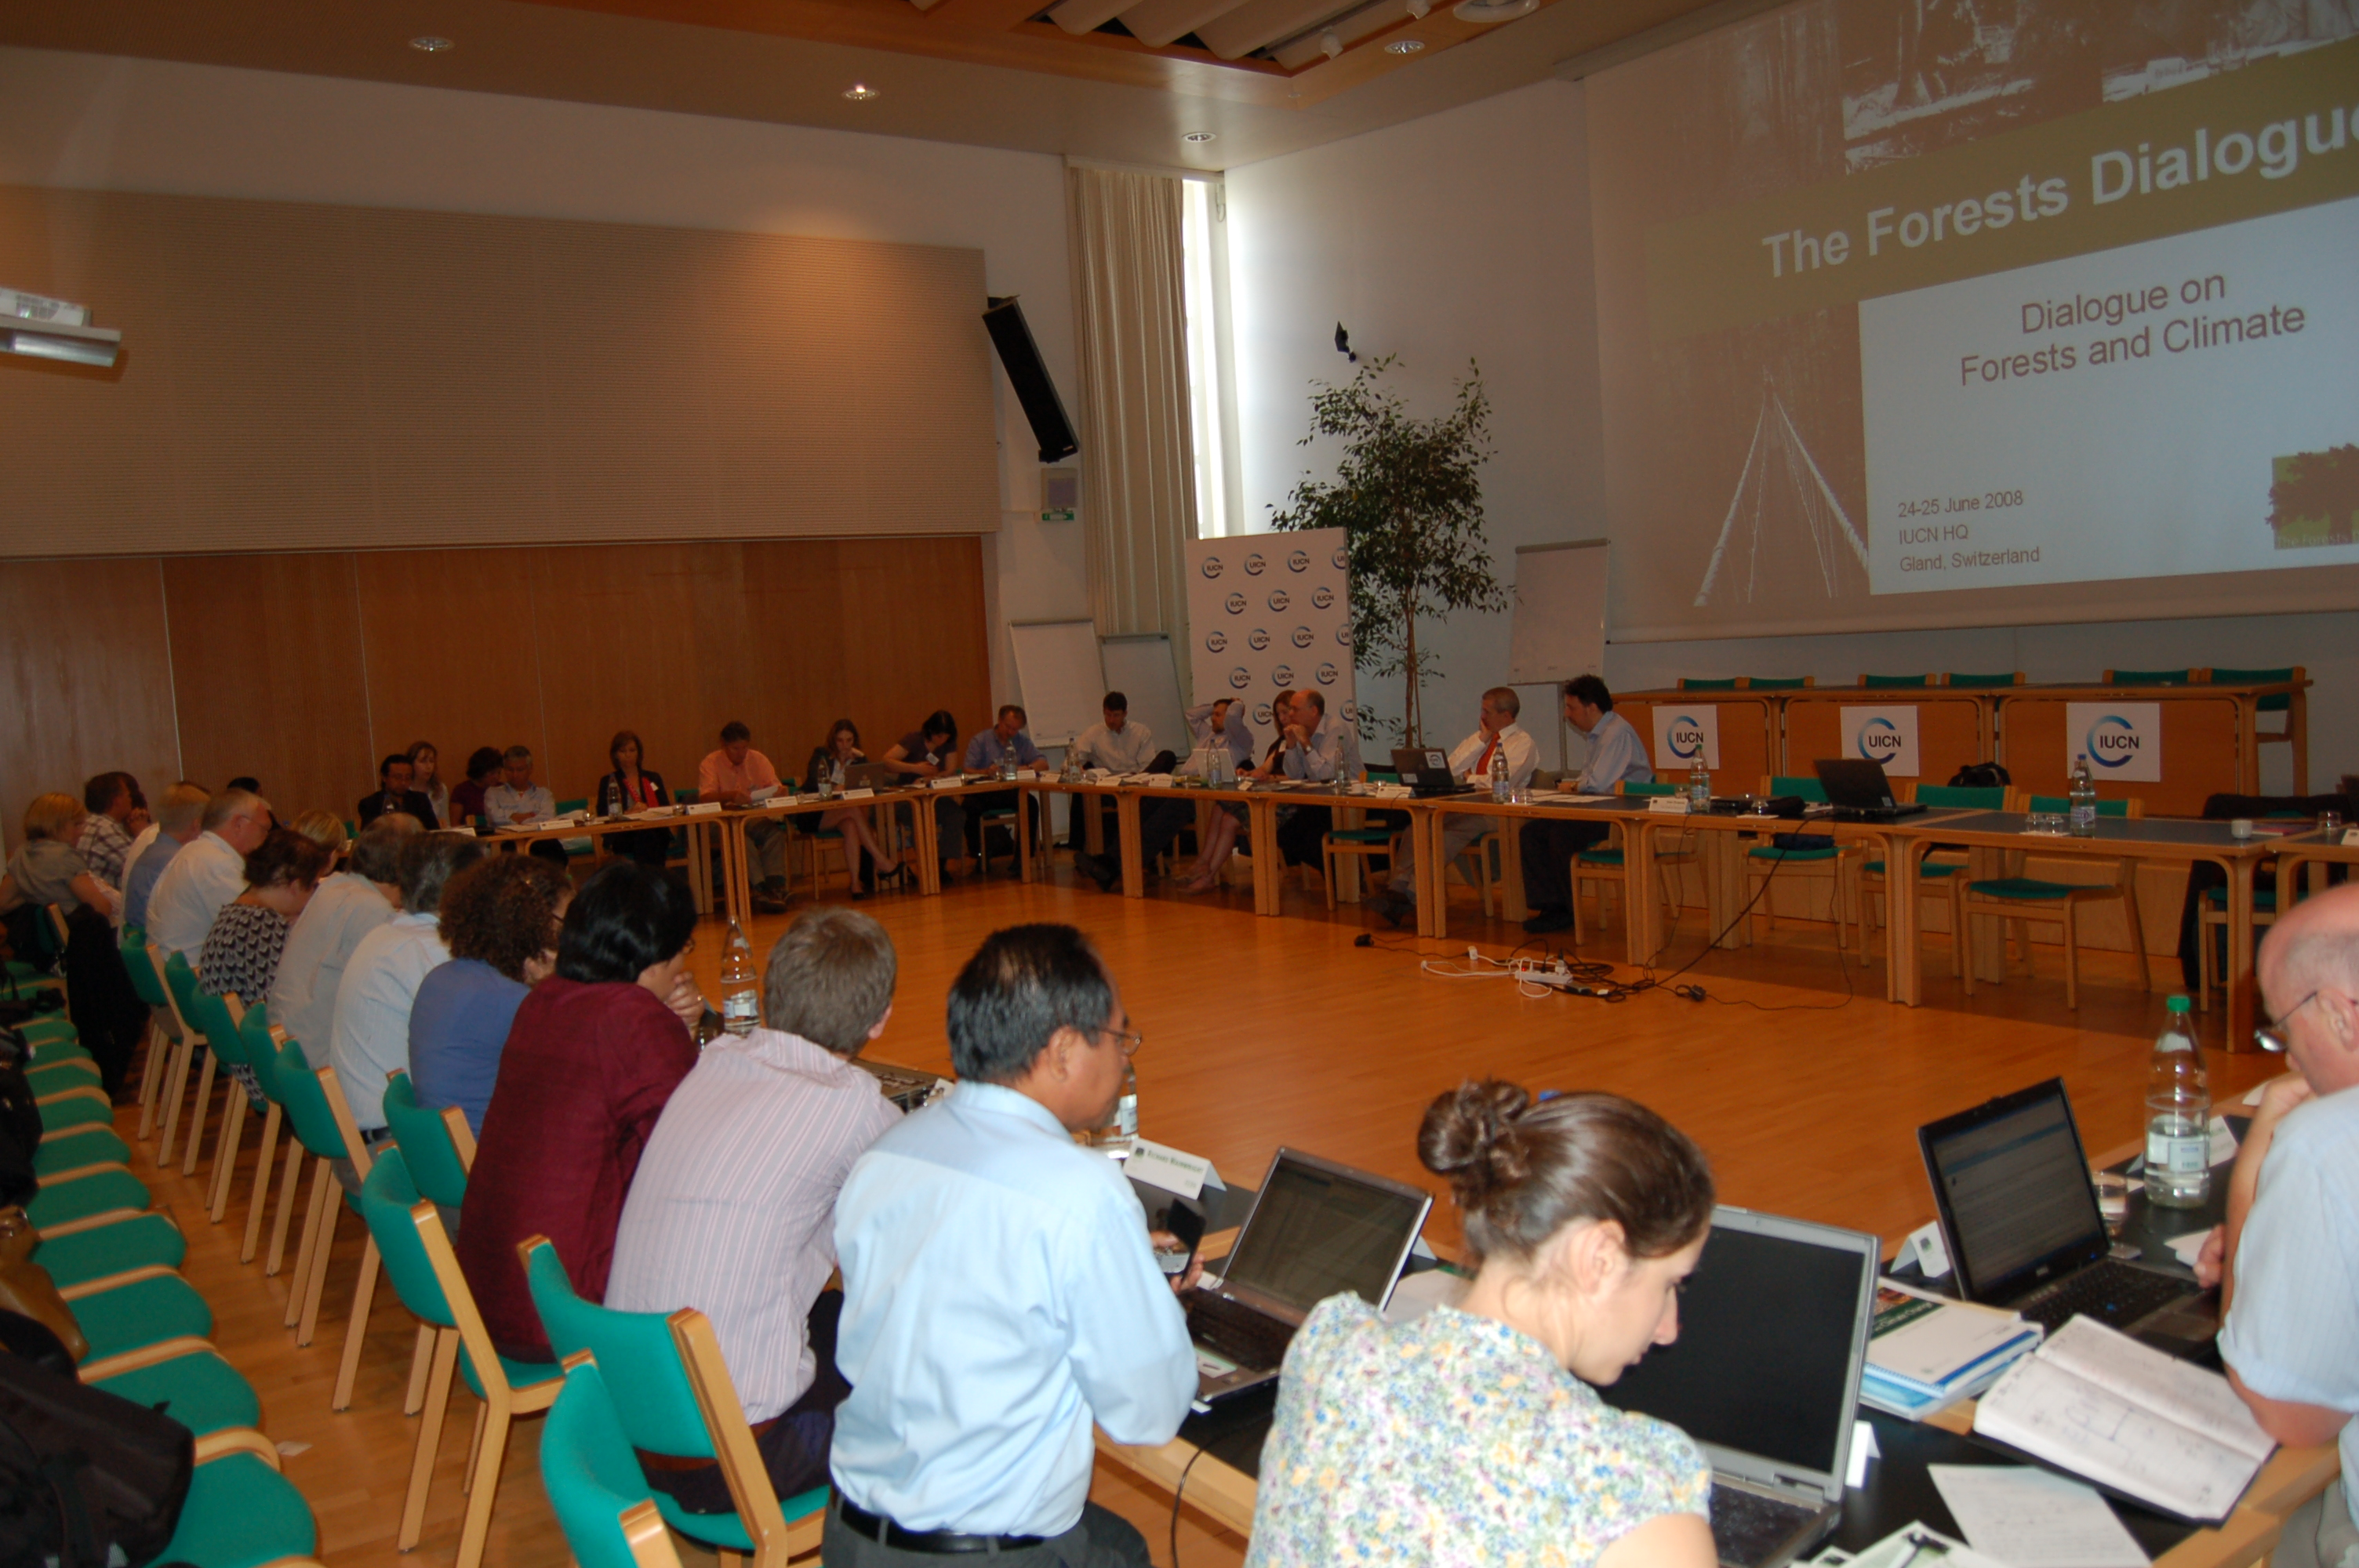 Dialogue on Forests and Climate plenary